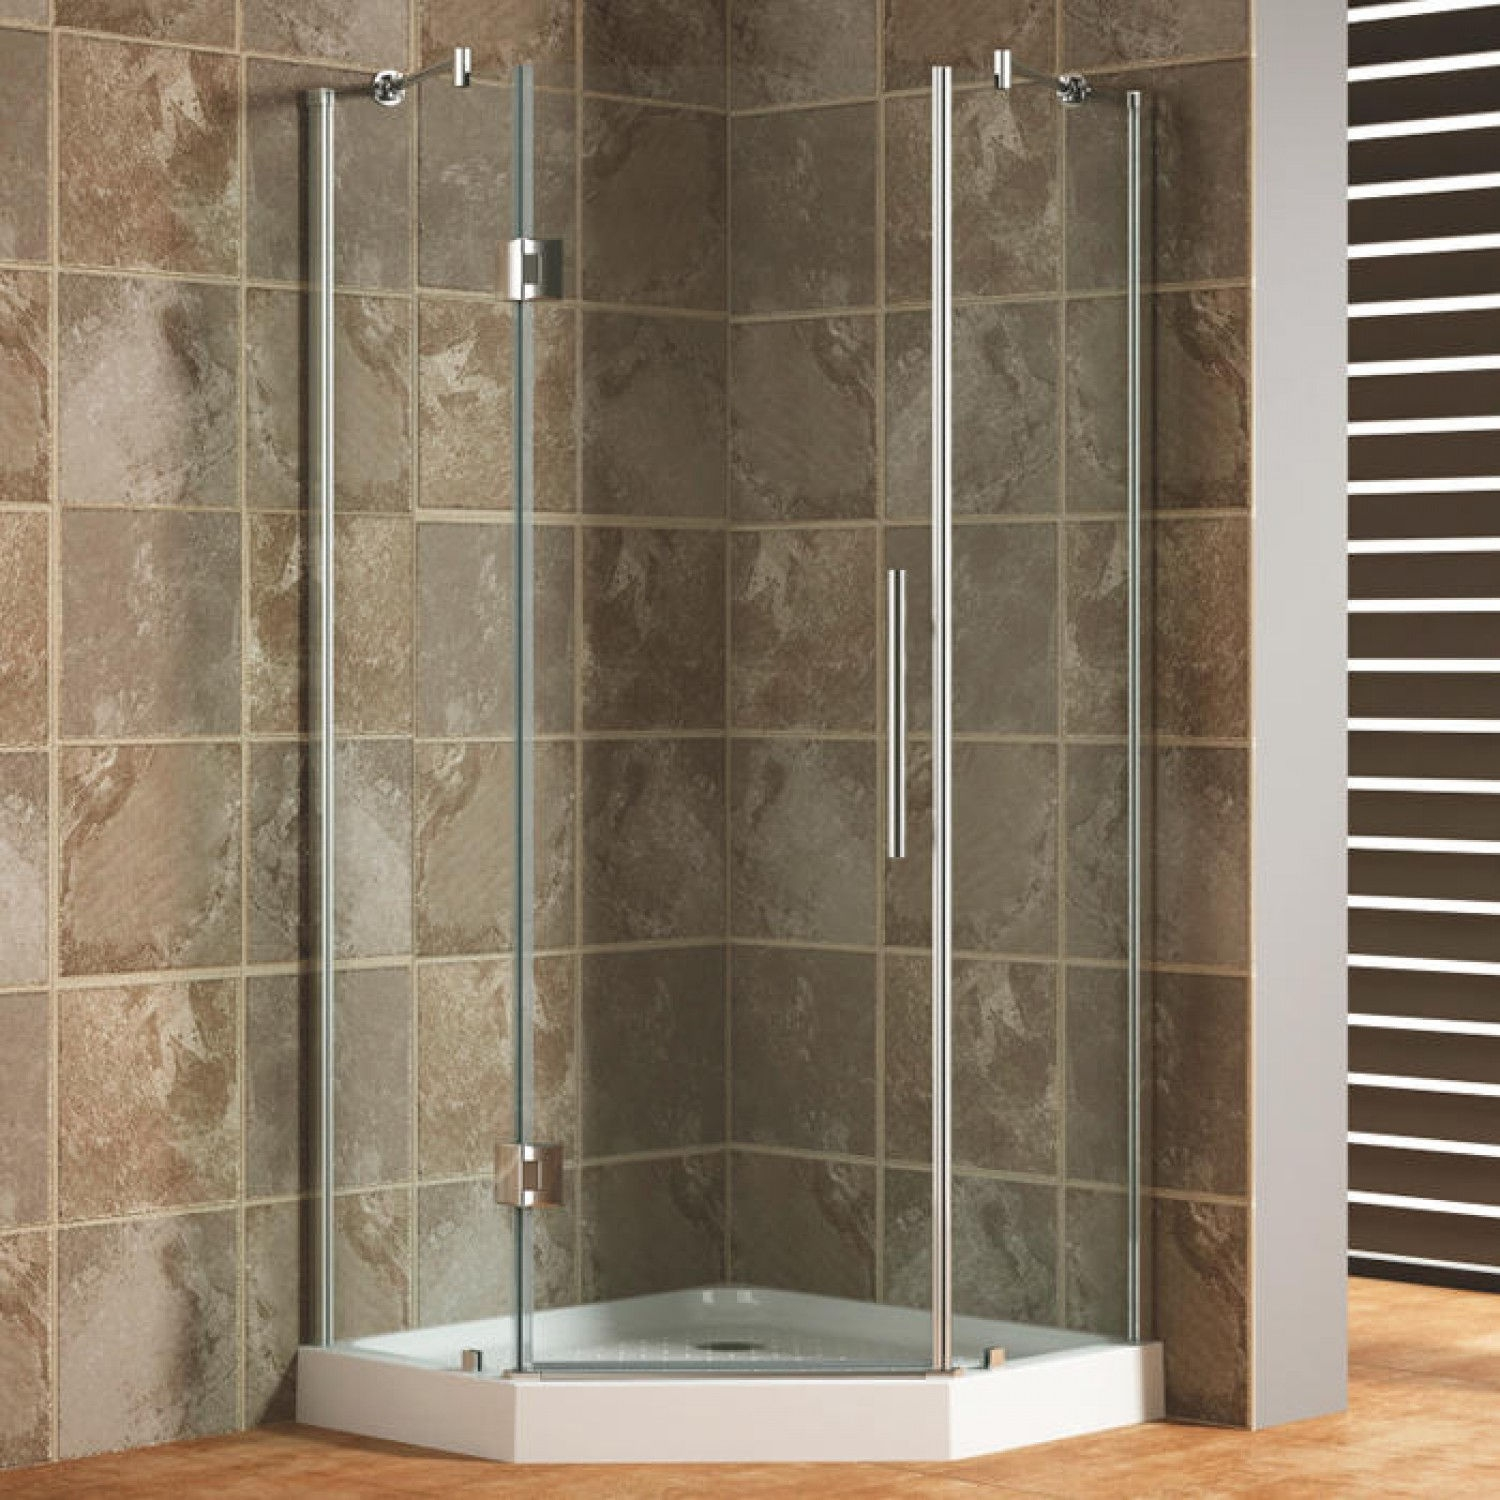 Corner Shower Doors36 x 36 frameless neo angle corner shower enclosure bathroom